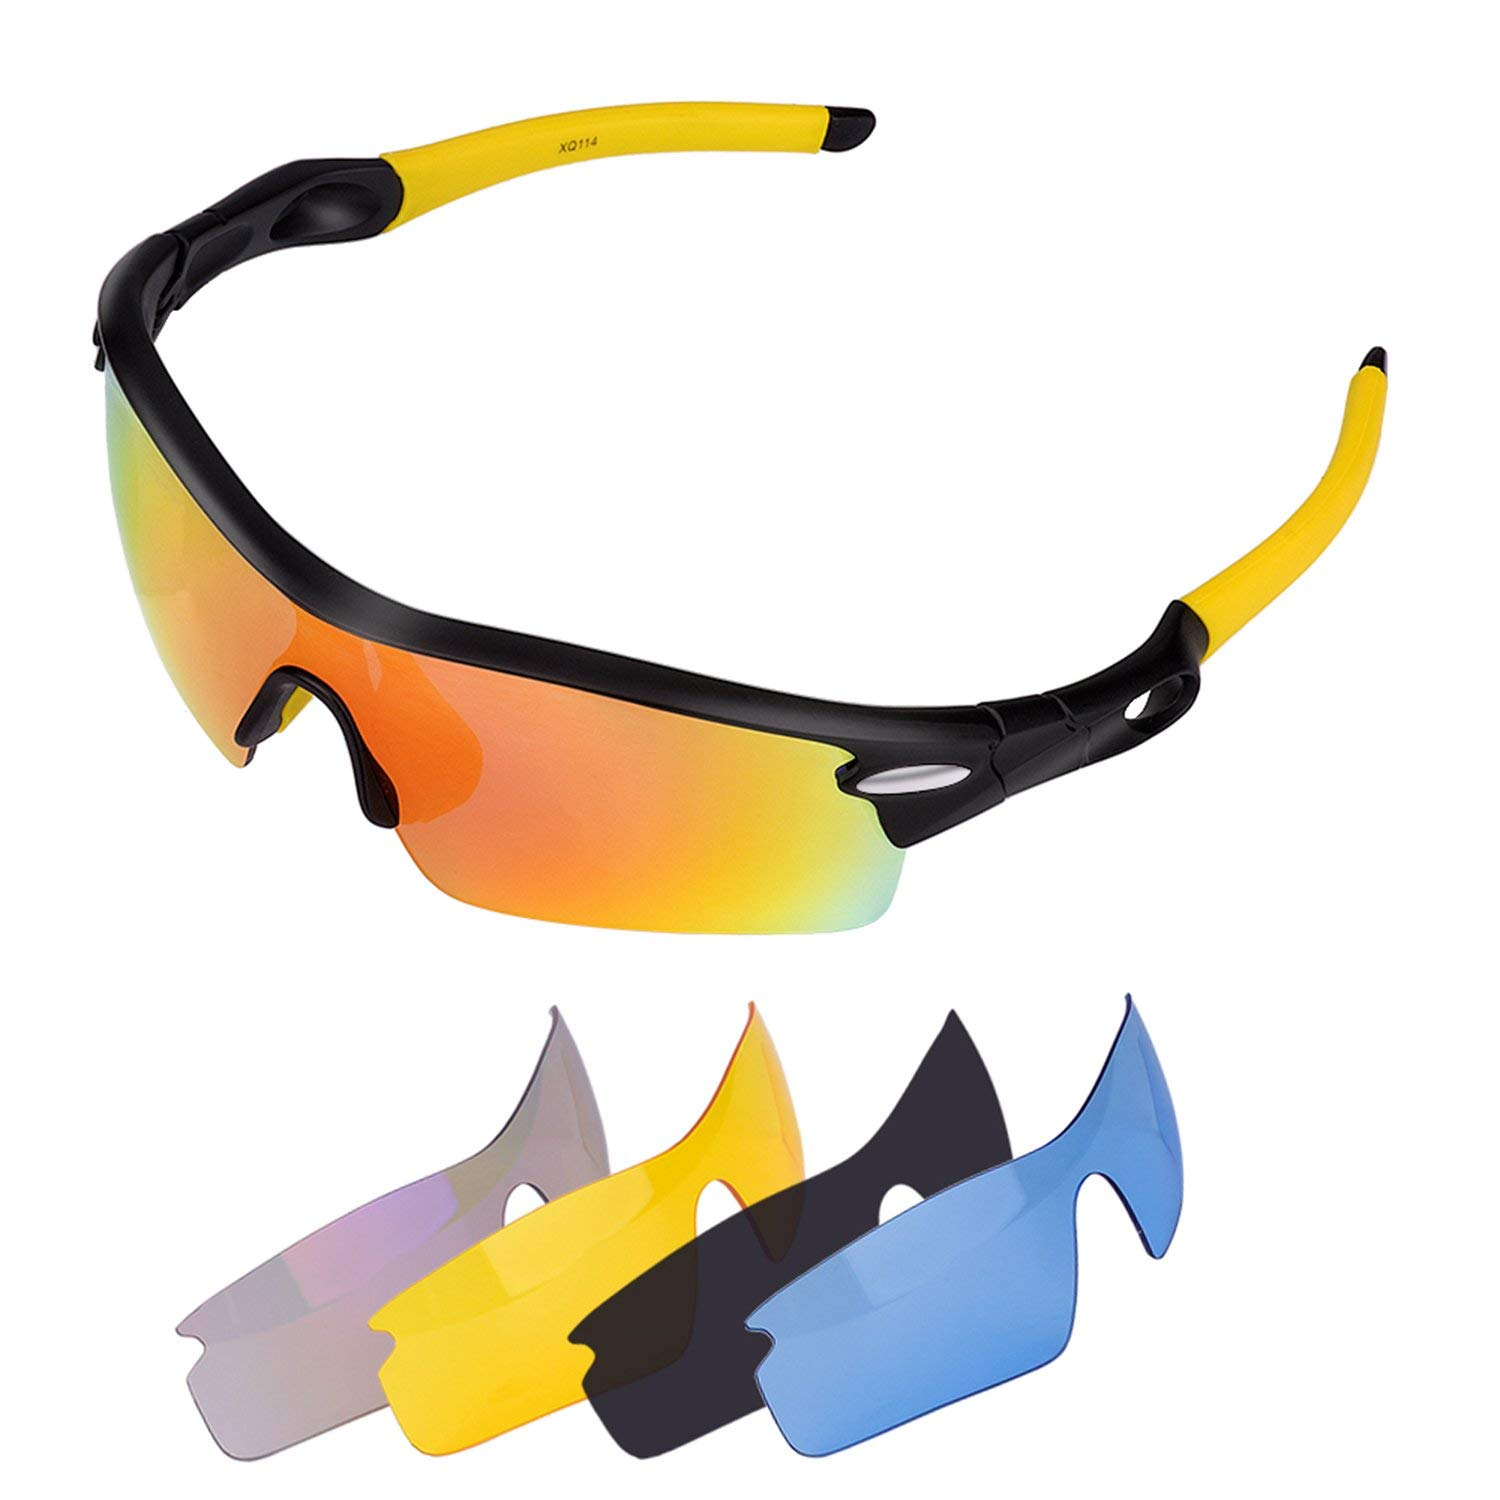 4b0ec97feb6 Get Quotations · Tager Polarized Sports Sunglasses Glasses with 5Set  Interchangeable Lenses for cycling